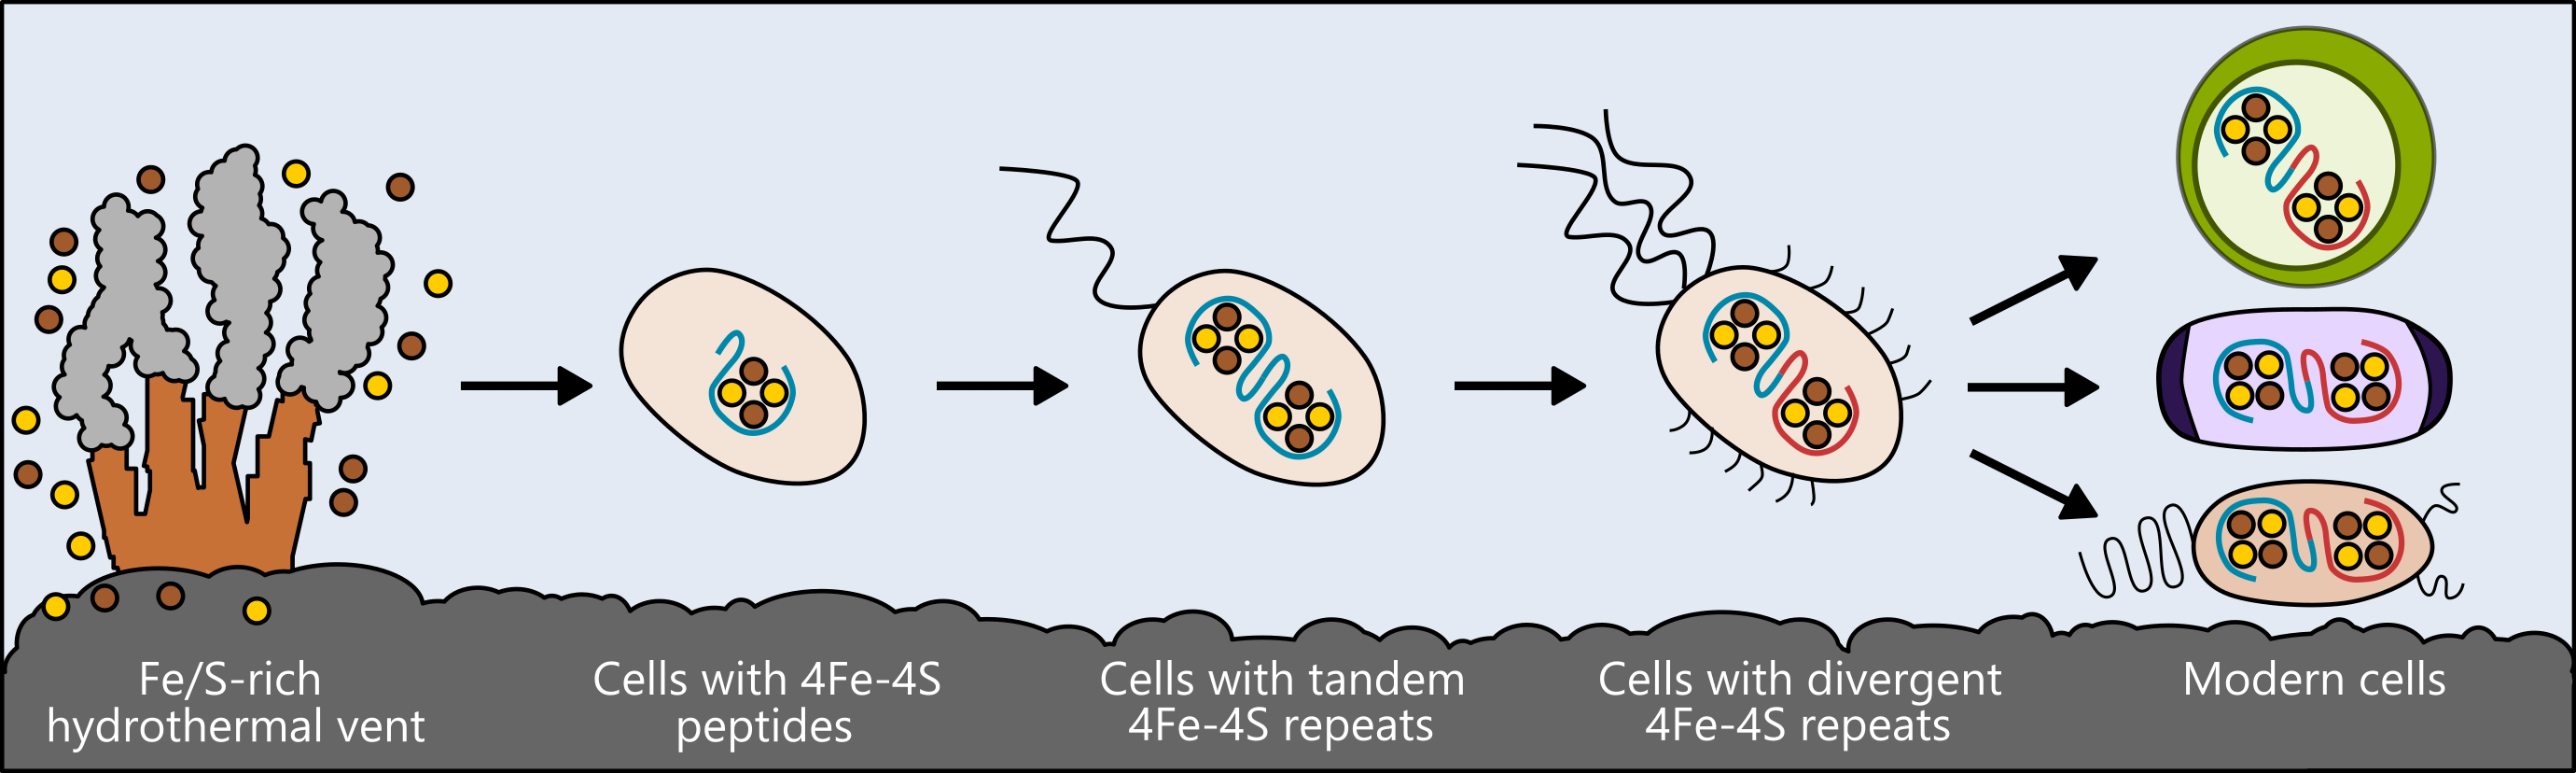 Life may have arisen near hydrothermal vents rich in iron and sulfur. The earliest cells incorporated these elements into small peptides, which became the first and simplest ferredoxins – proteins that shuttle electrons within the cell, to support metabolism. As cells evolved, ferredoxins mutated into more complex forms. The ferredoxins in modern bacteria, plant and animal cells are all derived from that simple ancestor. Credit: Ian Campbell, Rice University Image credit: None